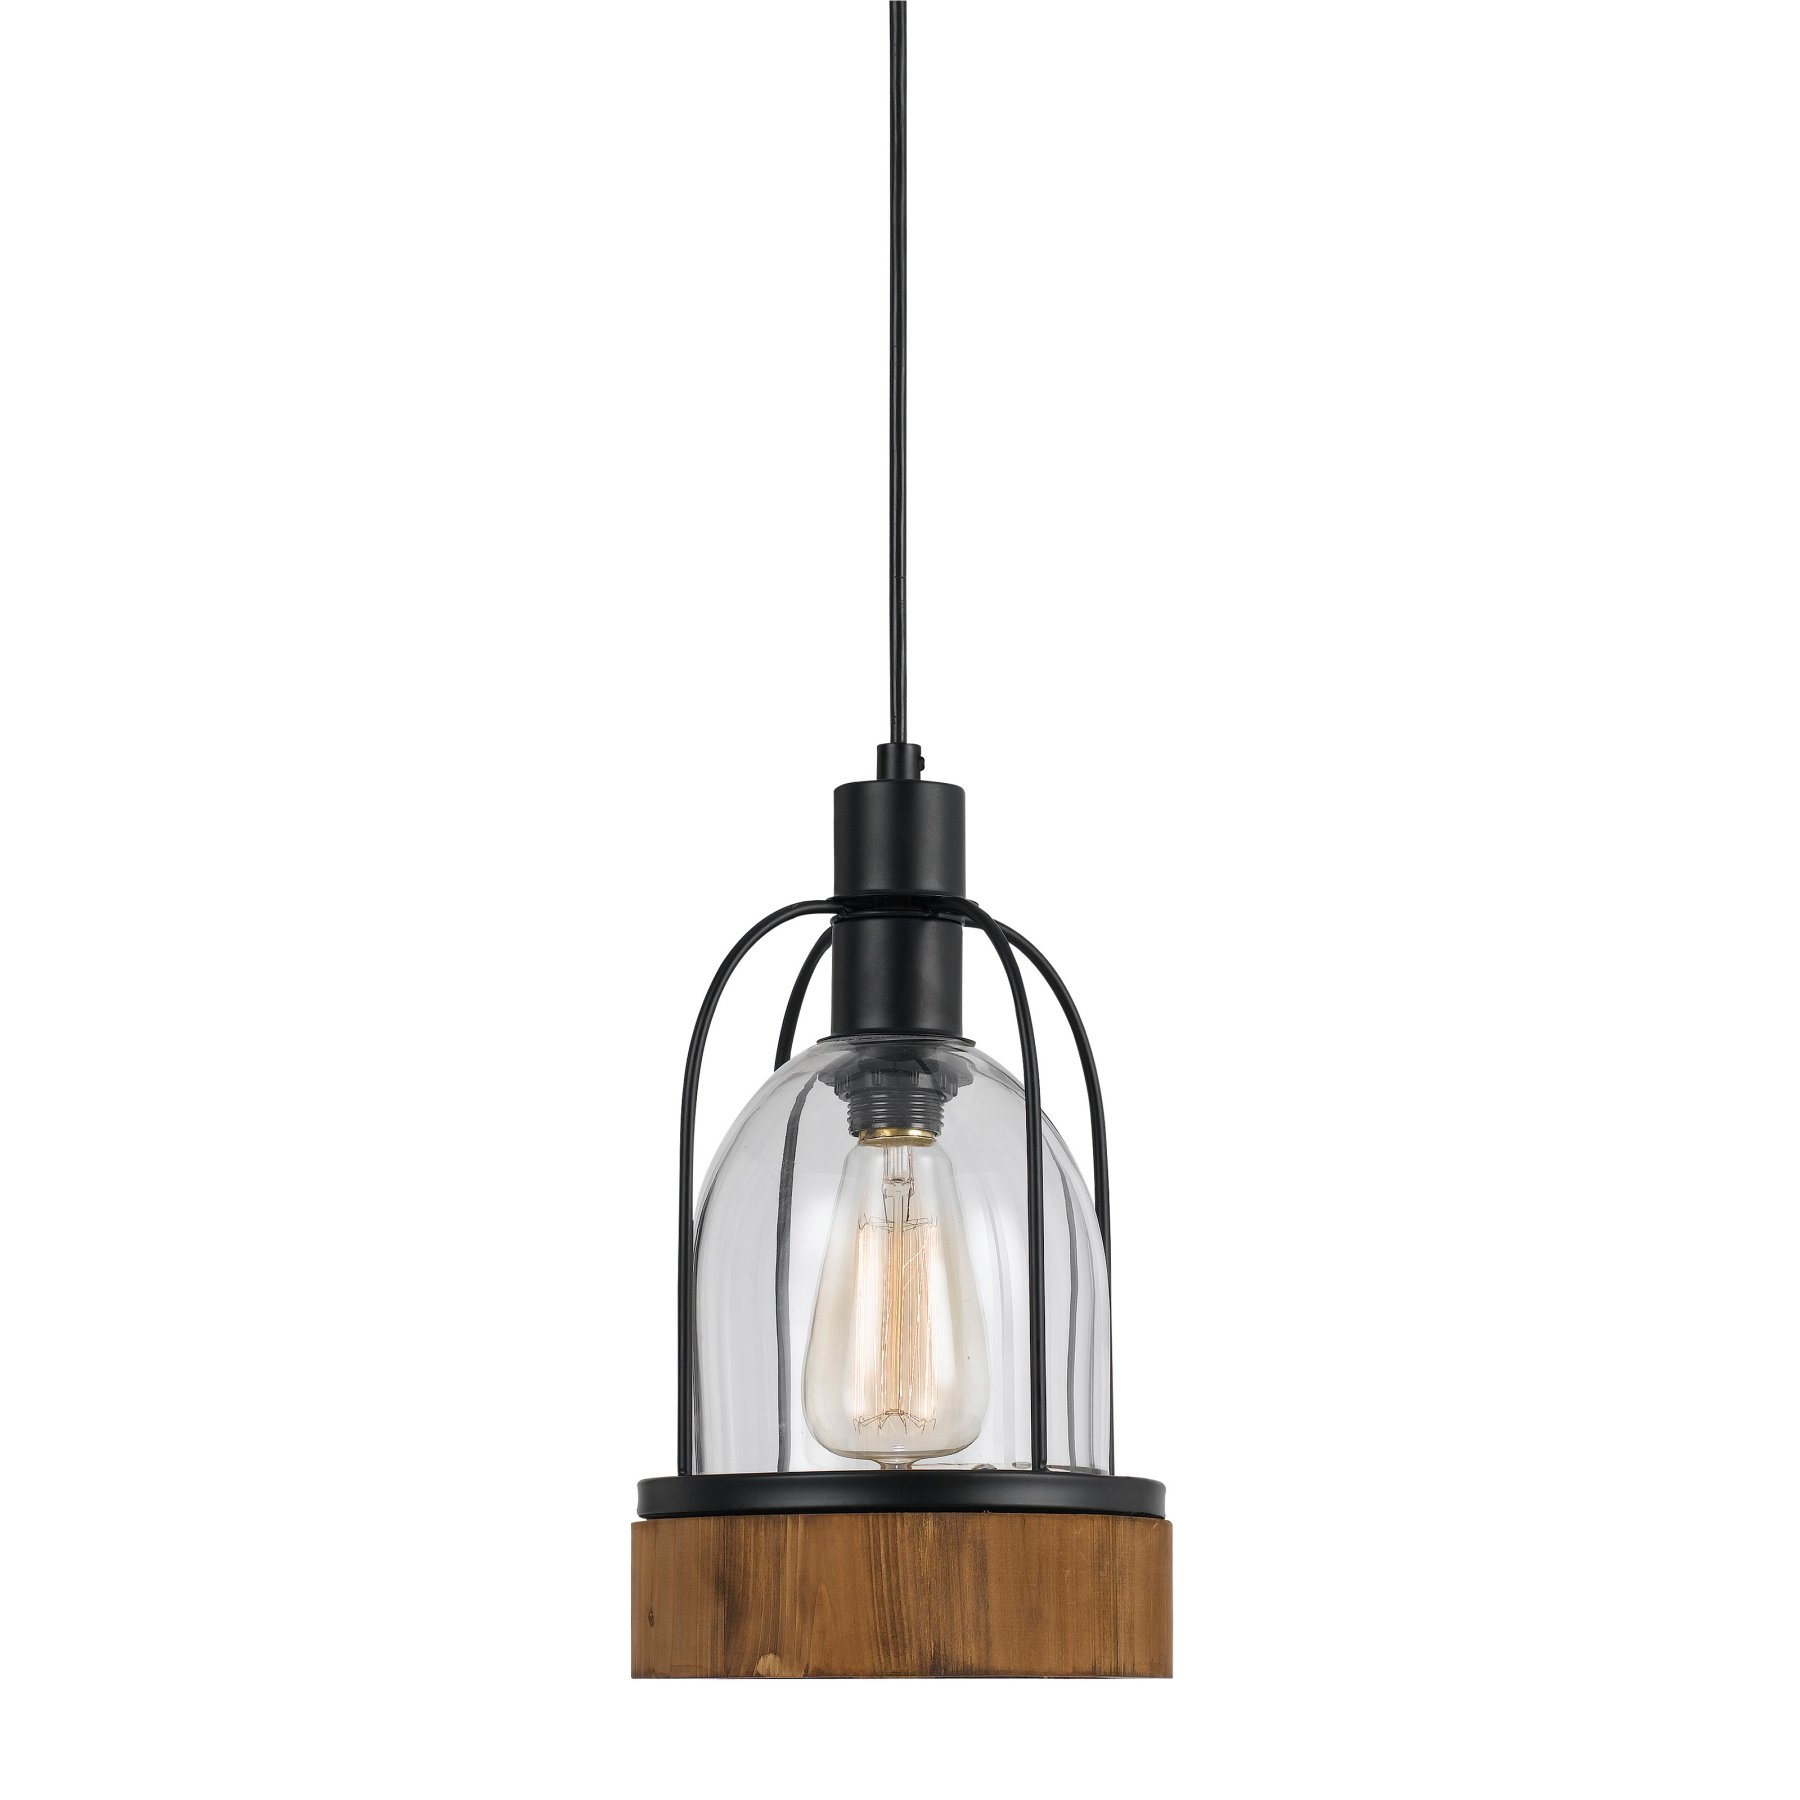 Cal Lighting Beacon Fx 3584 1P Pendant  Fx 3584 1P